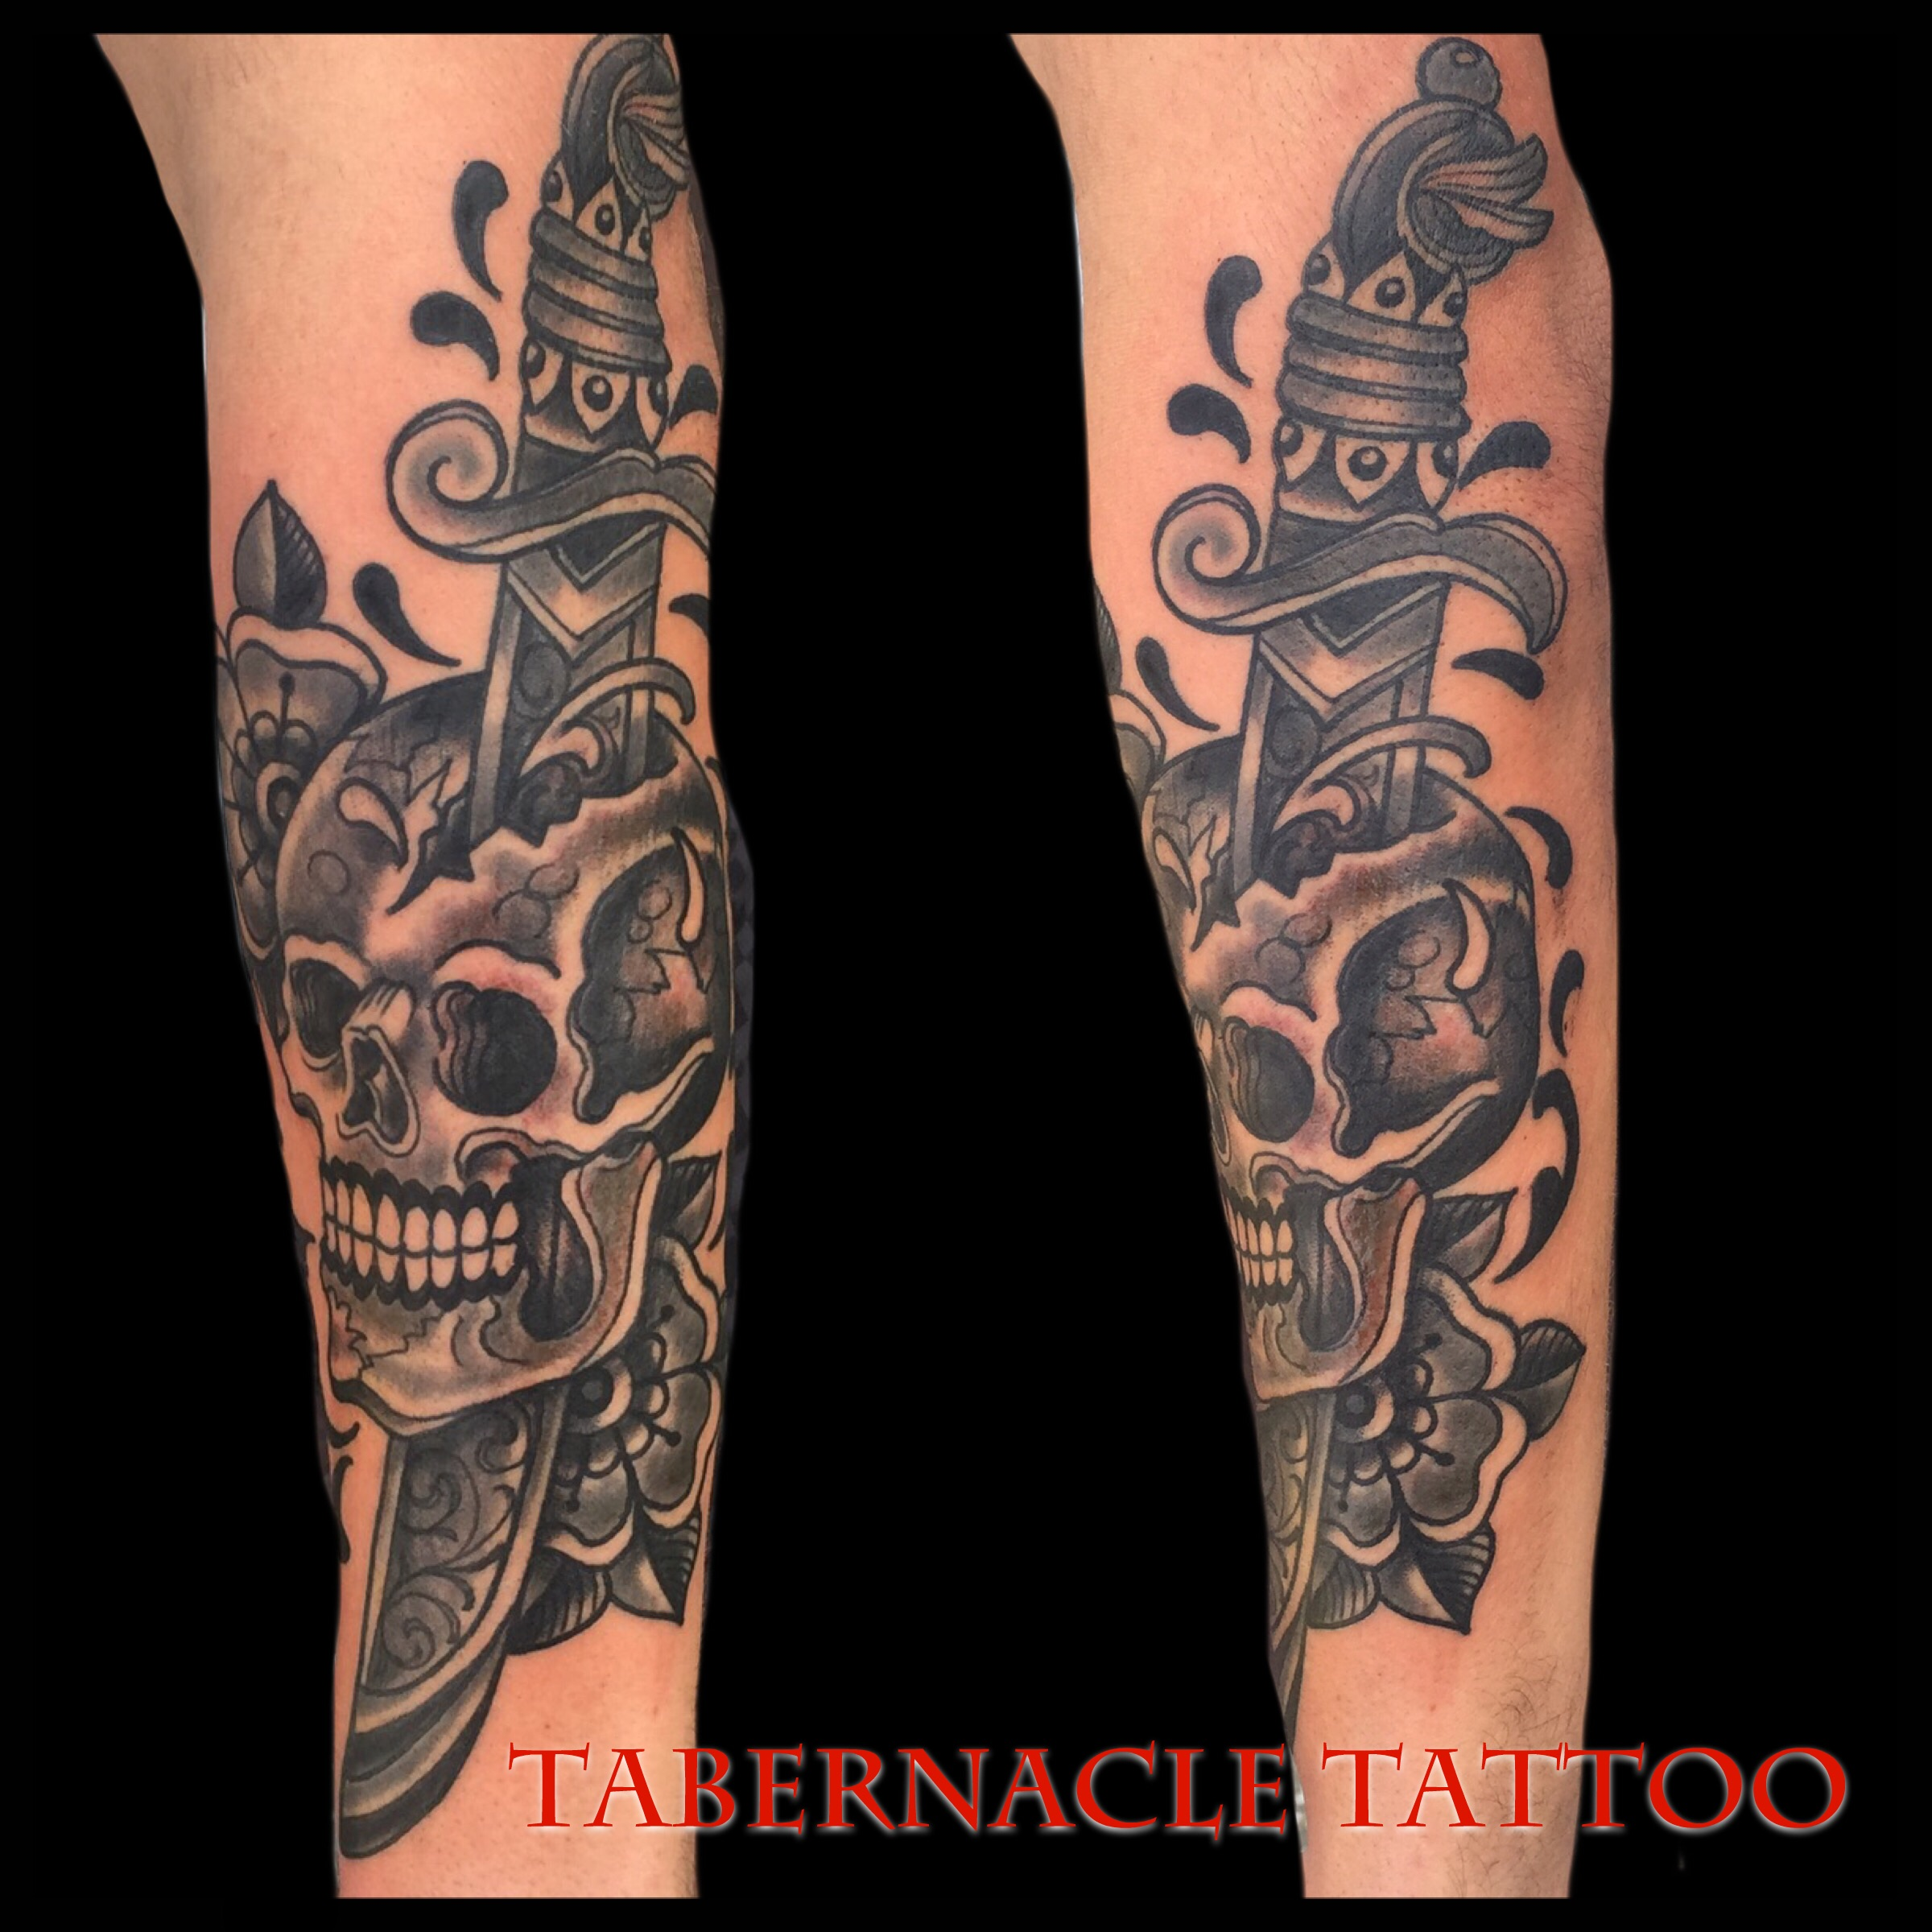 Skull and dagger tattoo in black and gray